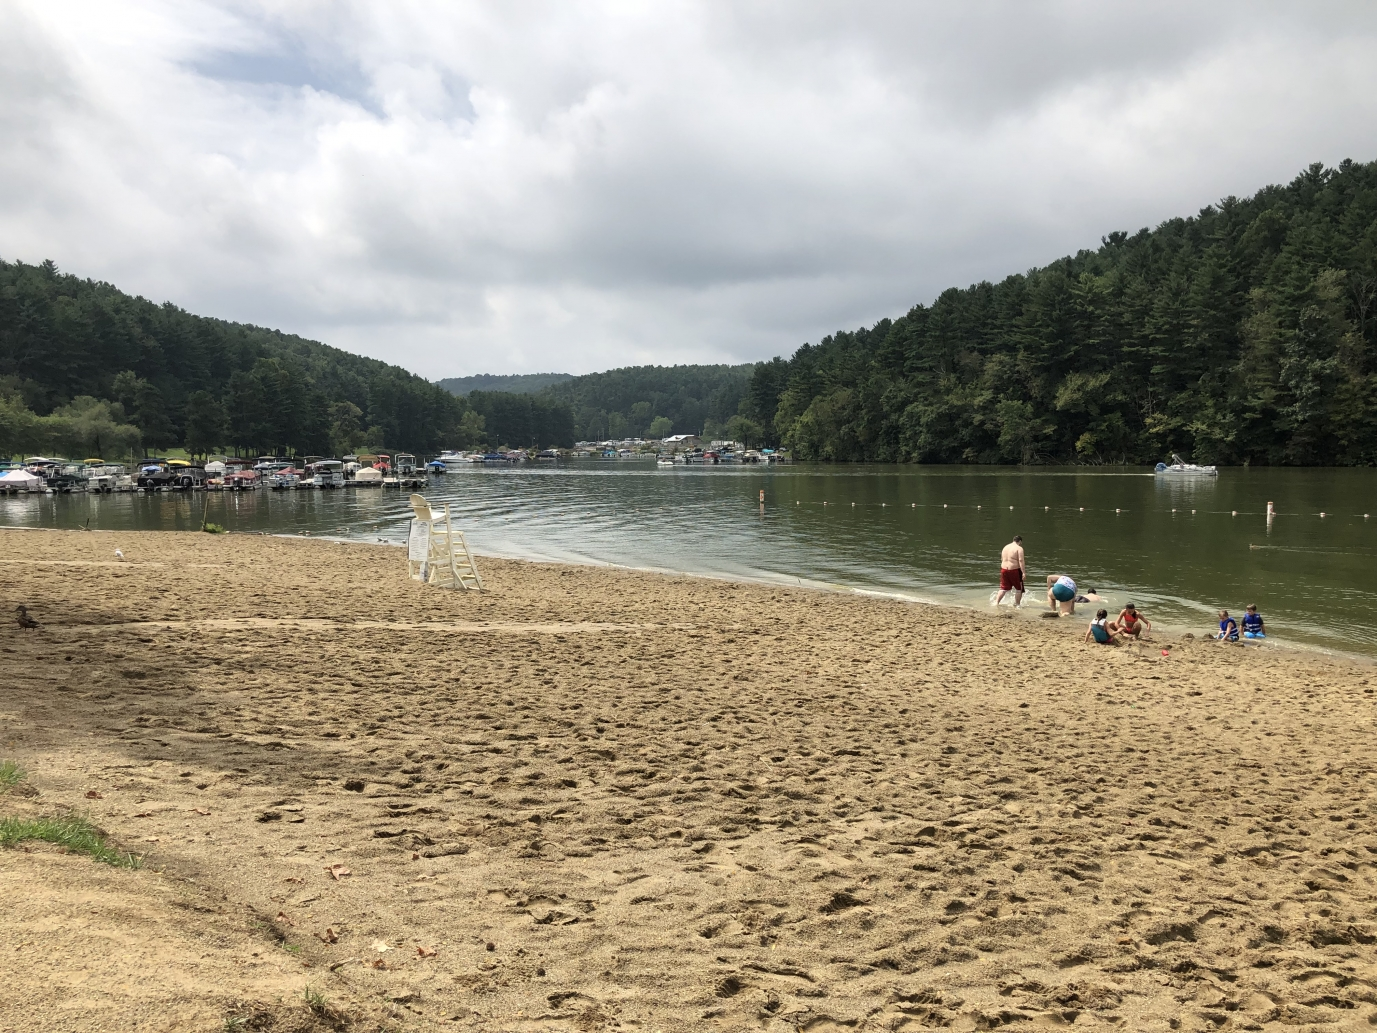 people on beach at Tappan Lake in Ohio